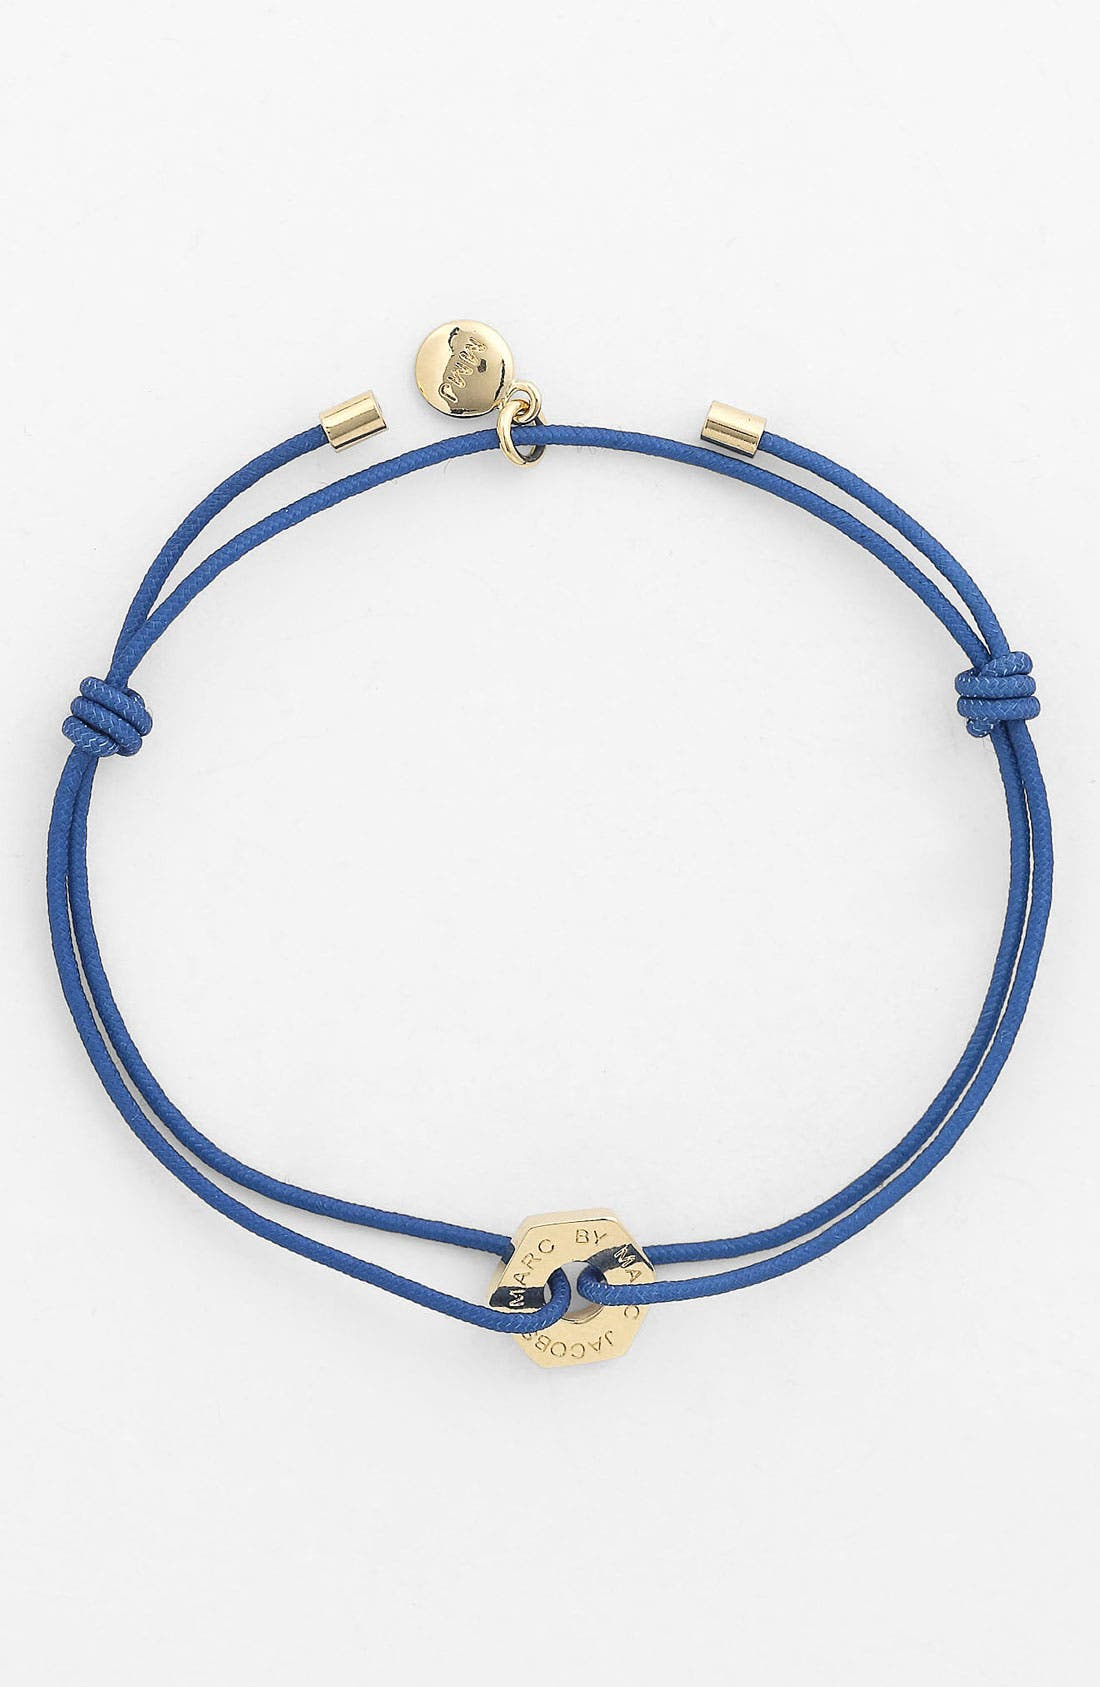 Main Image - MARC BY MARC JACOBS 'Bolts' Friendship Bracelet